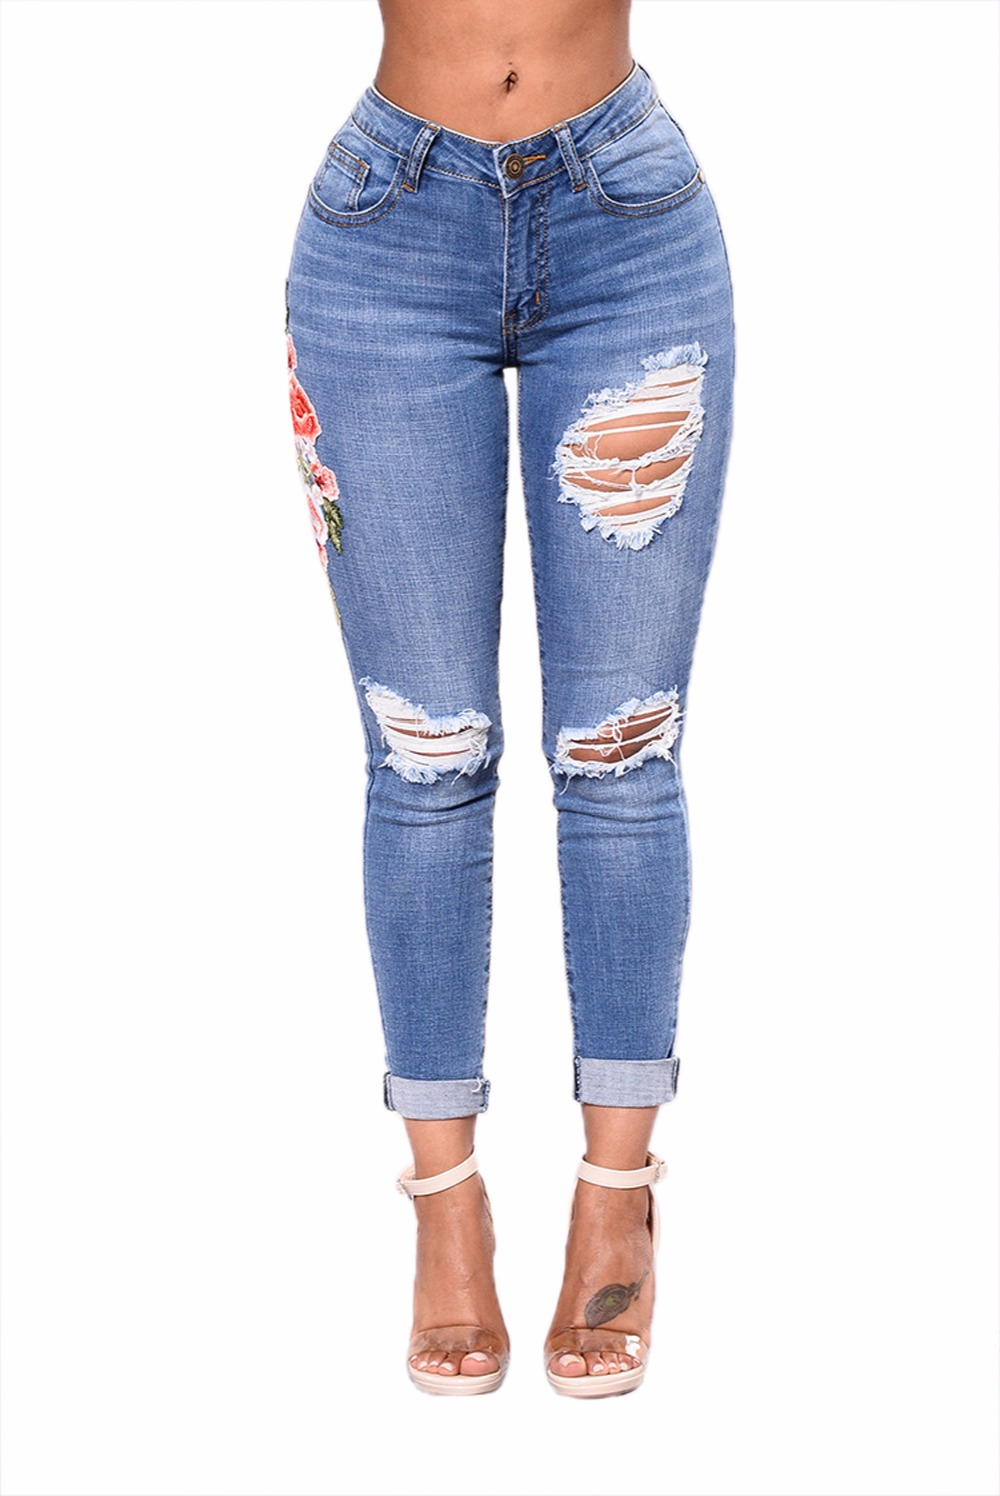 S-3XL Mid Rise Distressed Rose Embroidery Jeans Sex Women Jeans Xxx Usa Sexy Ladies Leggings Sex Pants